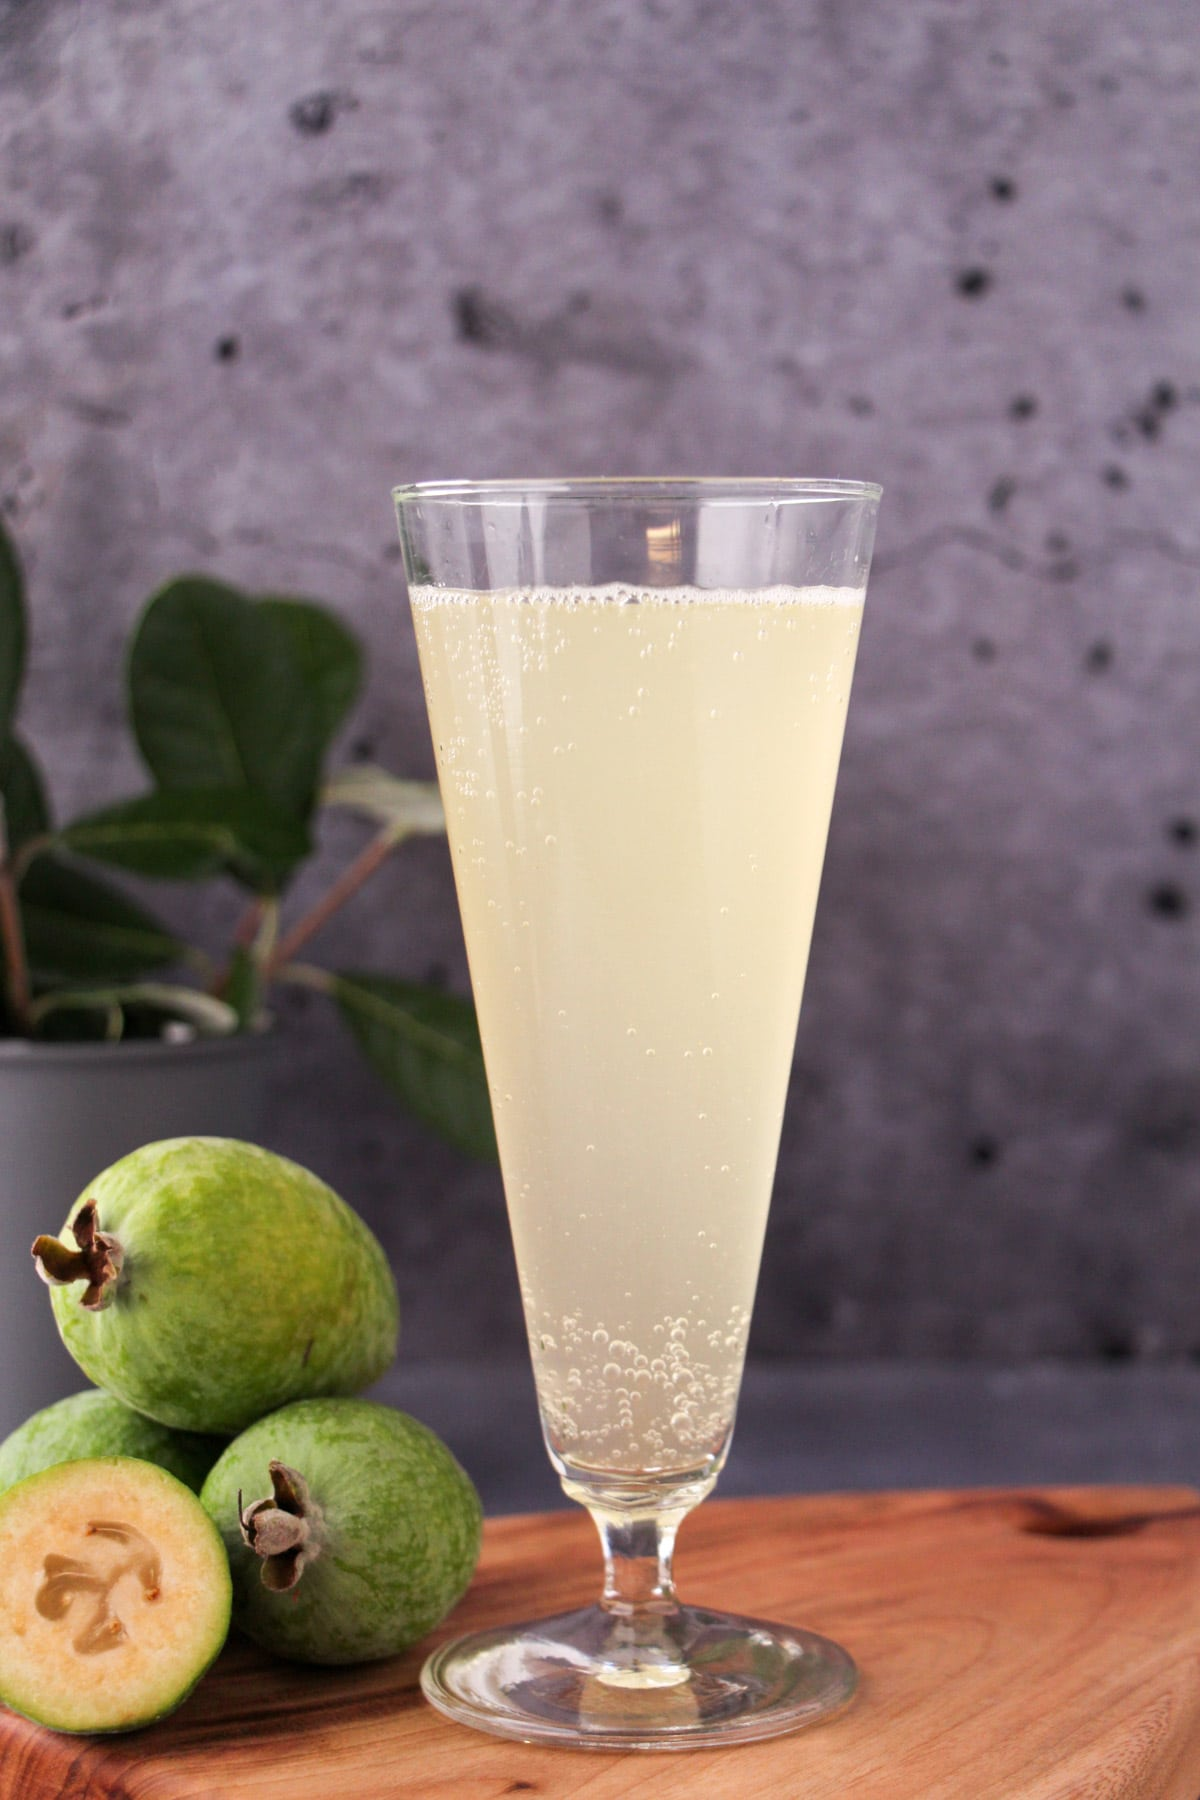 Tall glass of feijoa fizz on a board, with fresh feijoas and feijoa leaves.